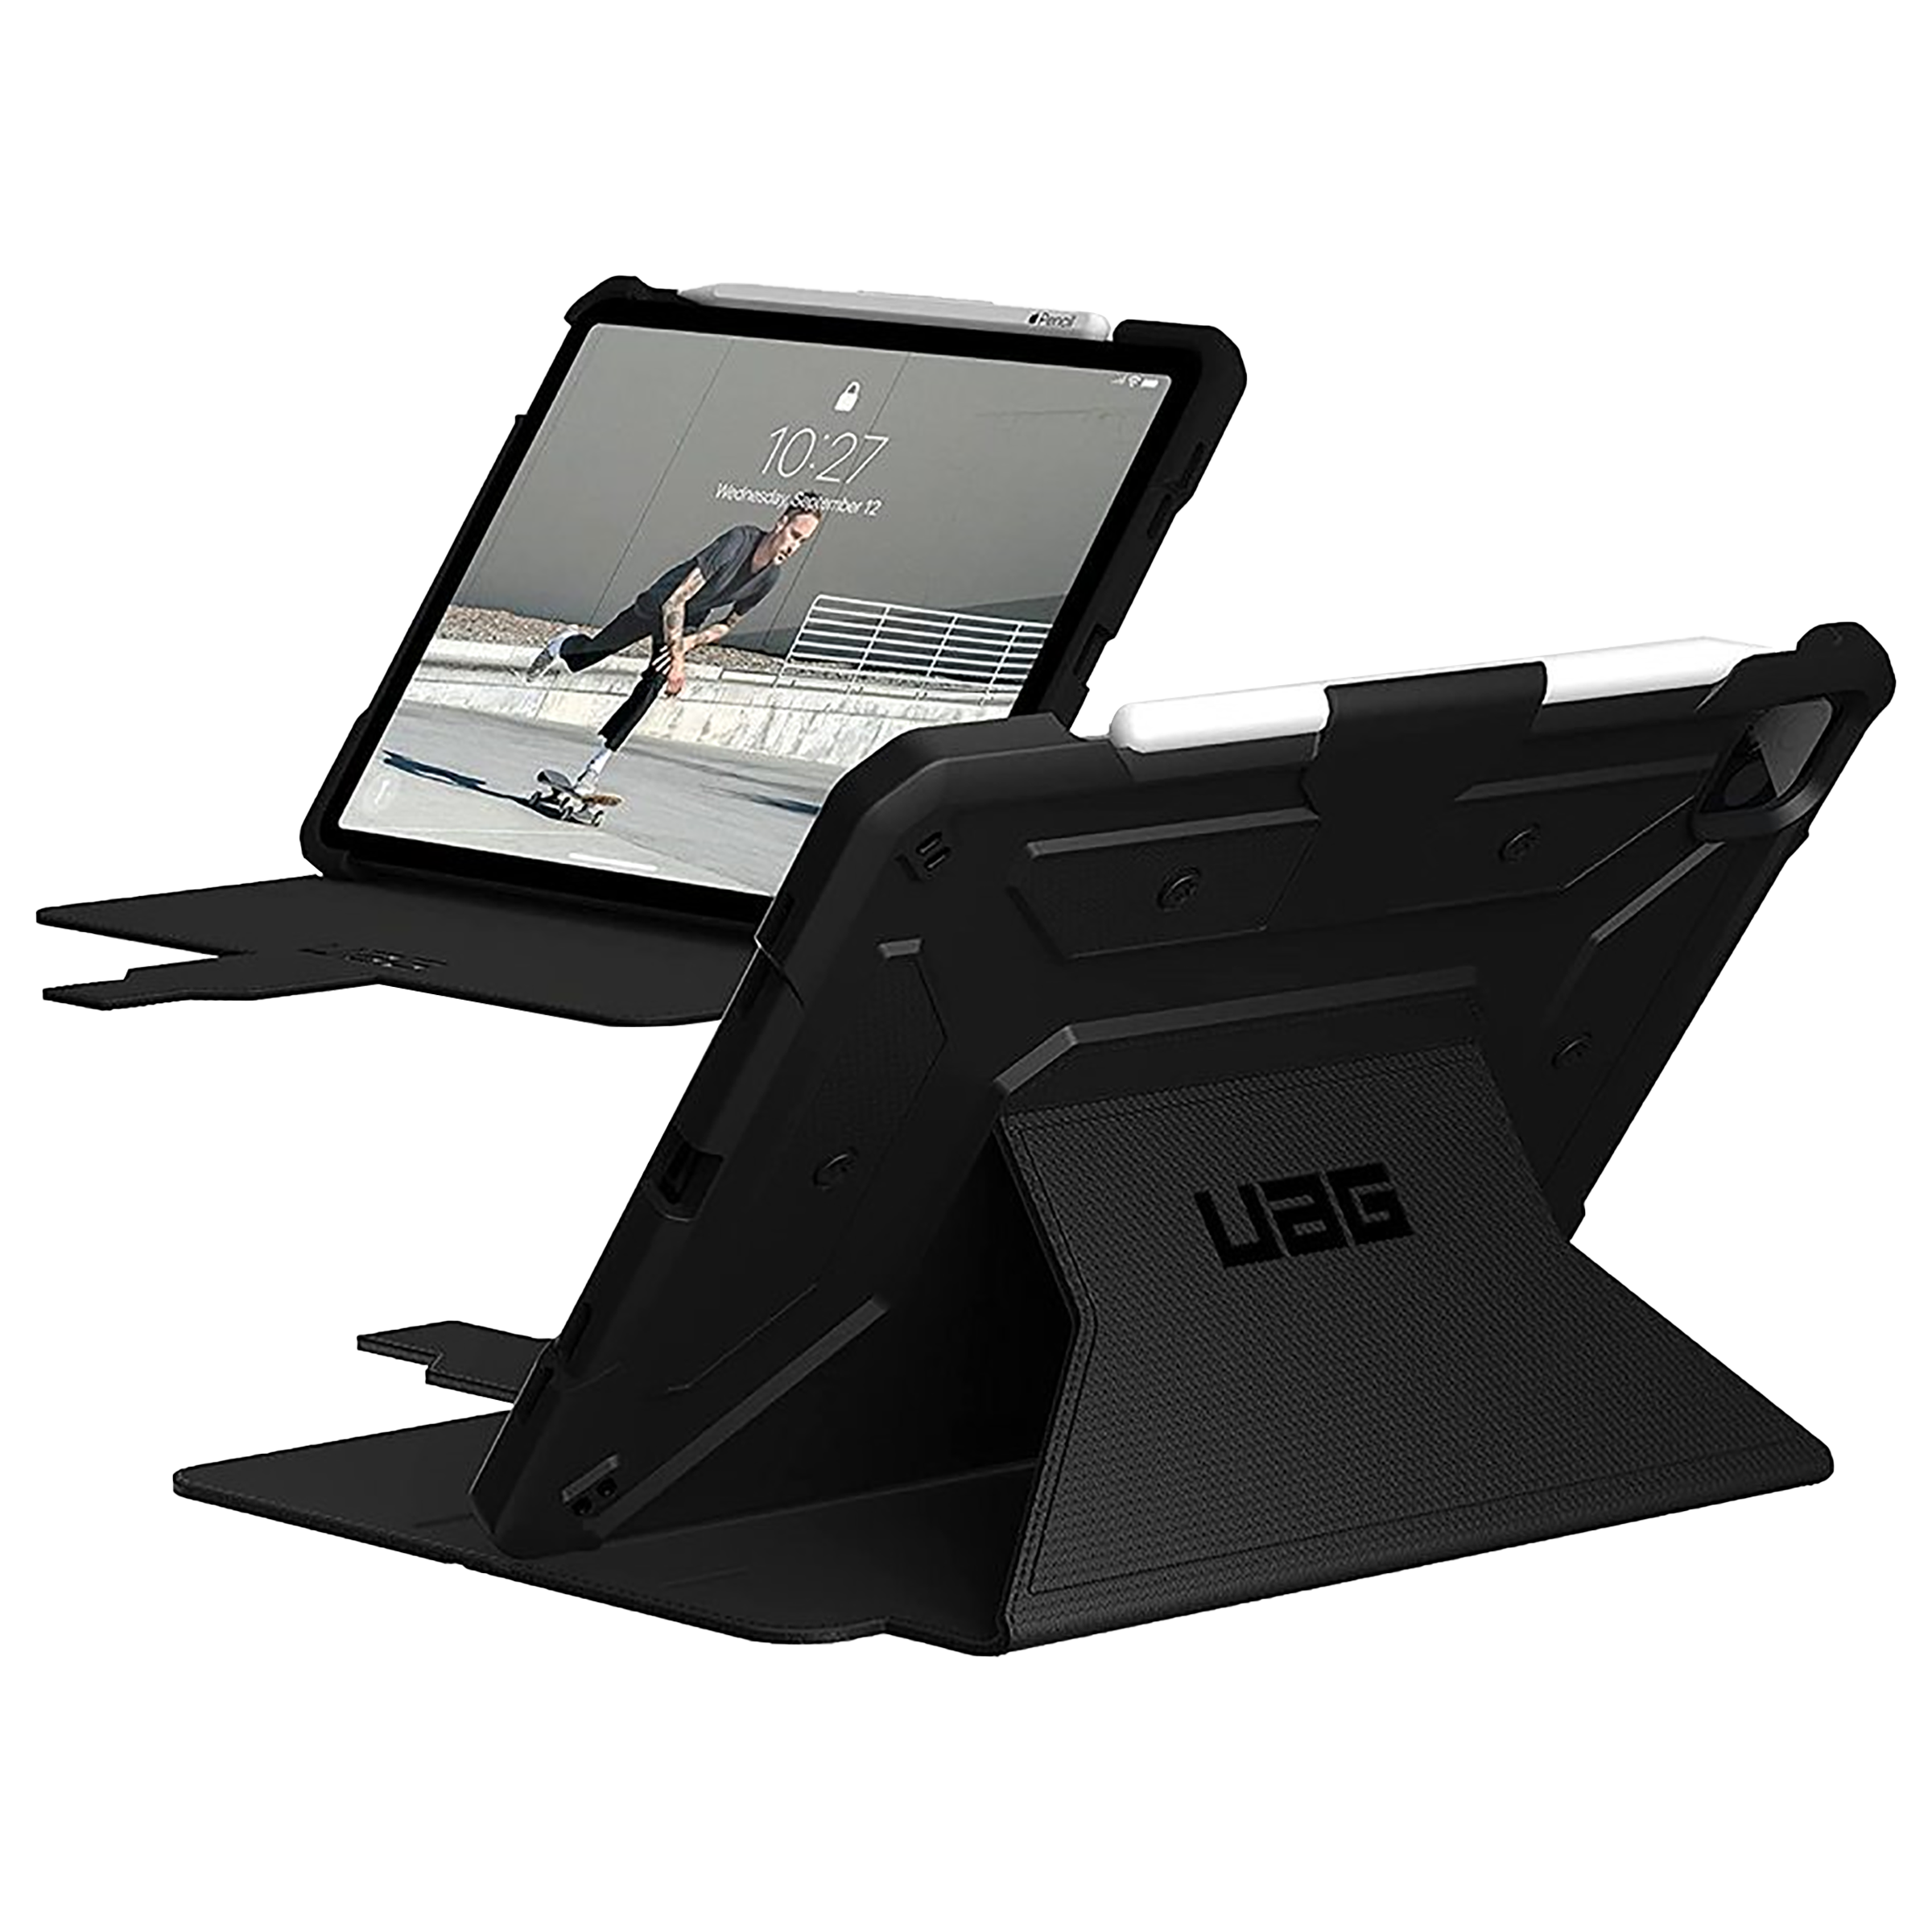 UAG Metropolis Thermoplastic Polyurethane Flip Case with Stand For Apple iPad Pro 11 Inch / iPad Air 4 (10.9 Inch) (Drop & Shock Protection, UGMP_IPD11PG3_BK, Black)_1